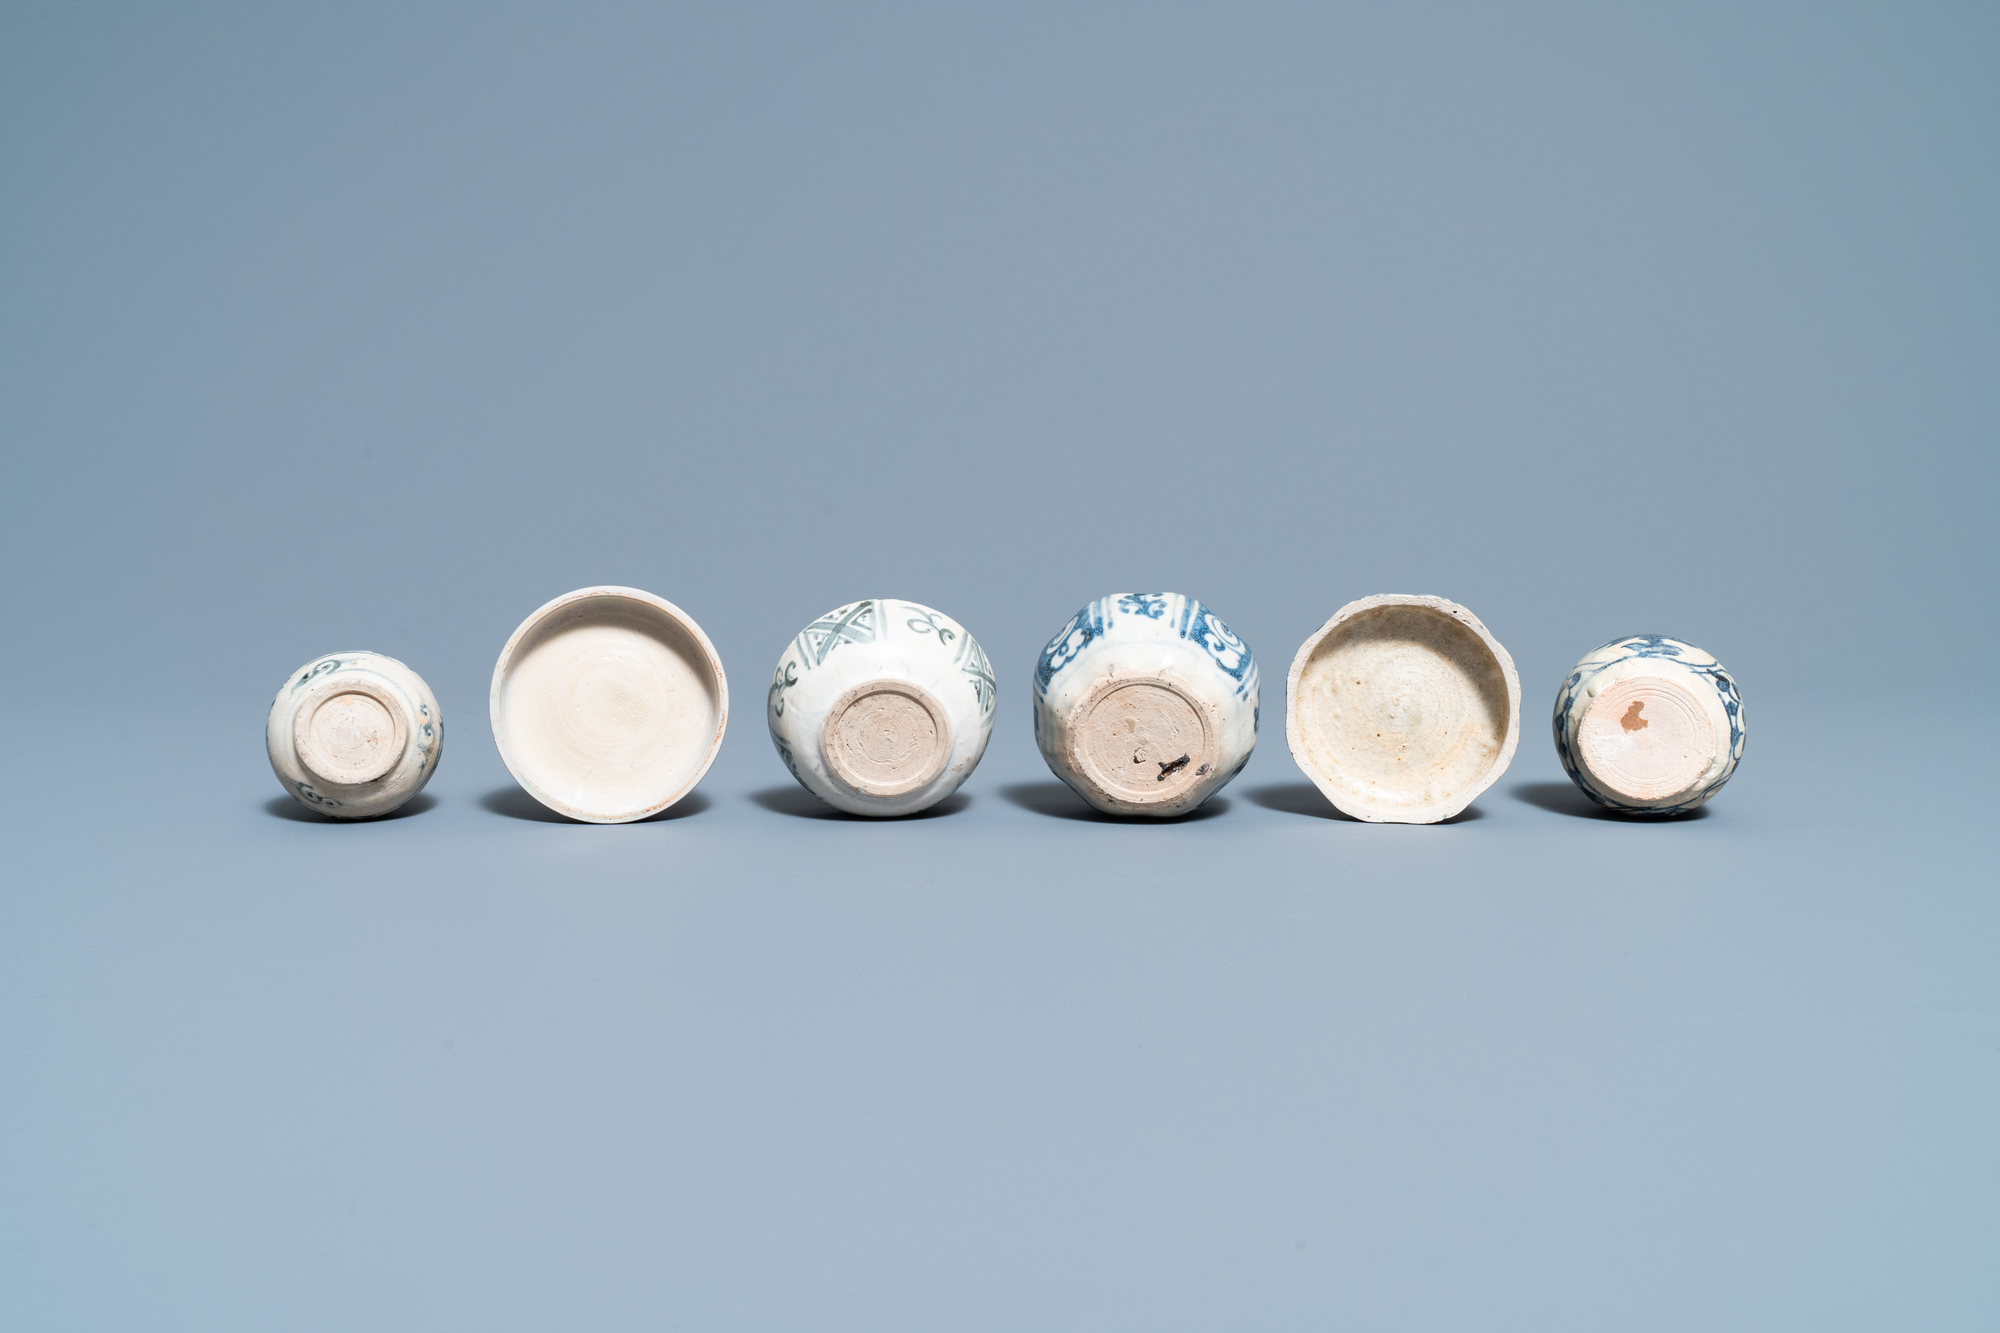 Four blue and white Vietnamese or Annamese ceramics and a Chinese jarlet, 15/16th C. - Image 12 of 12